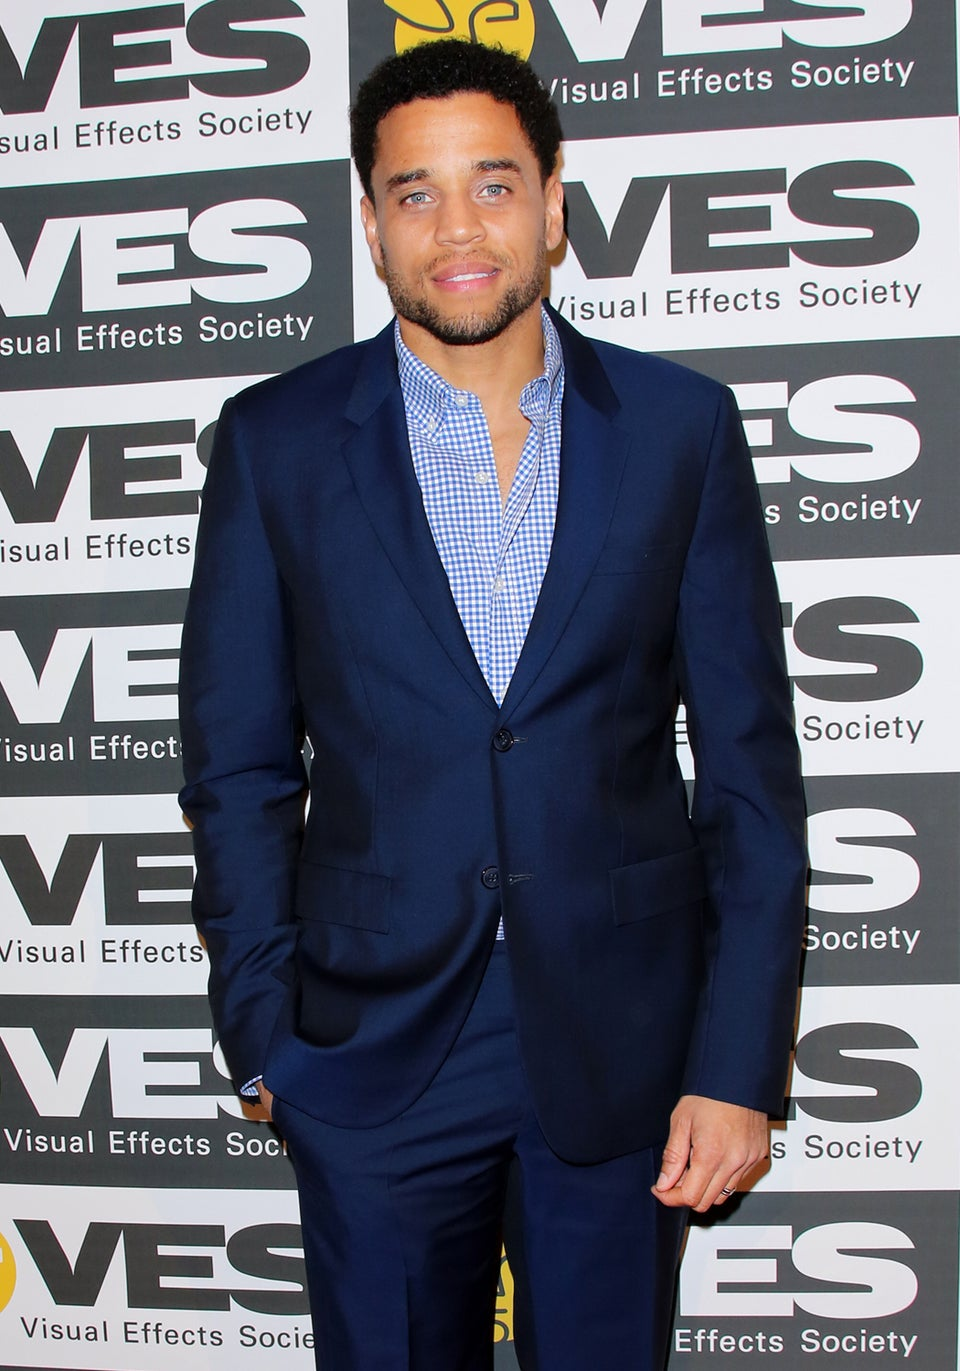 EXCLUSIVE: Michael Ealy Warns, 'Don't Try To Mold a Guy'